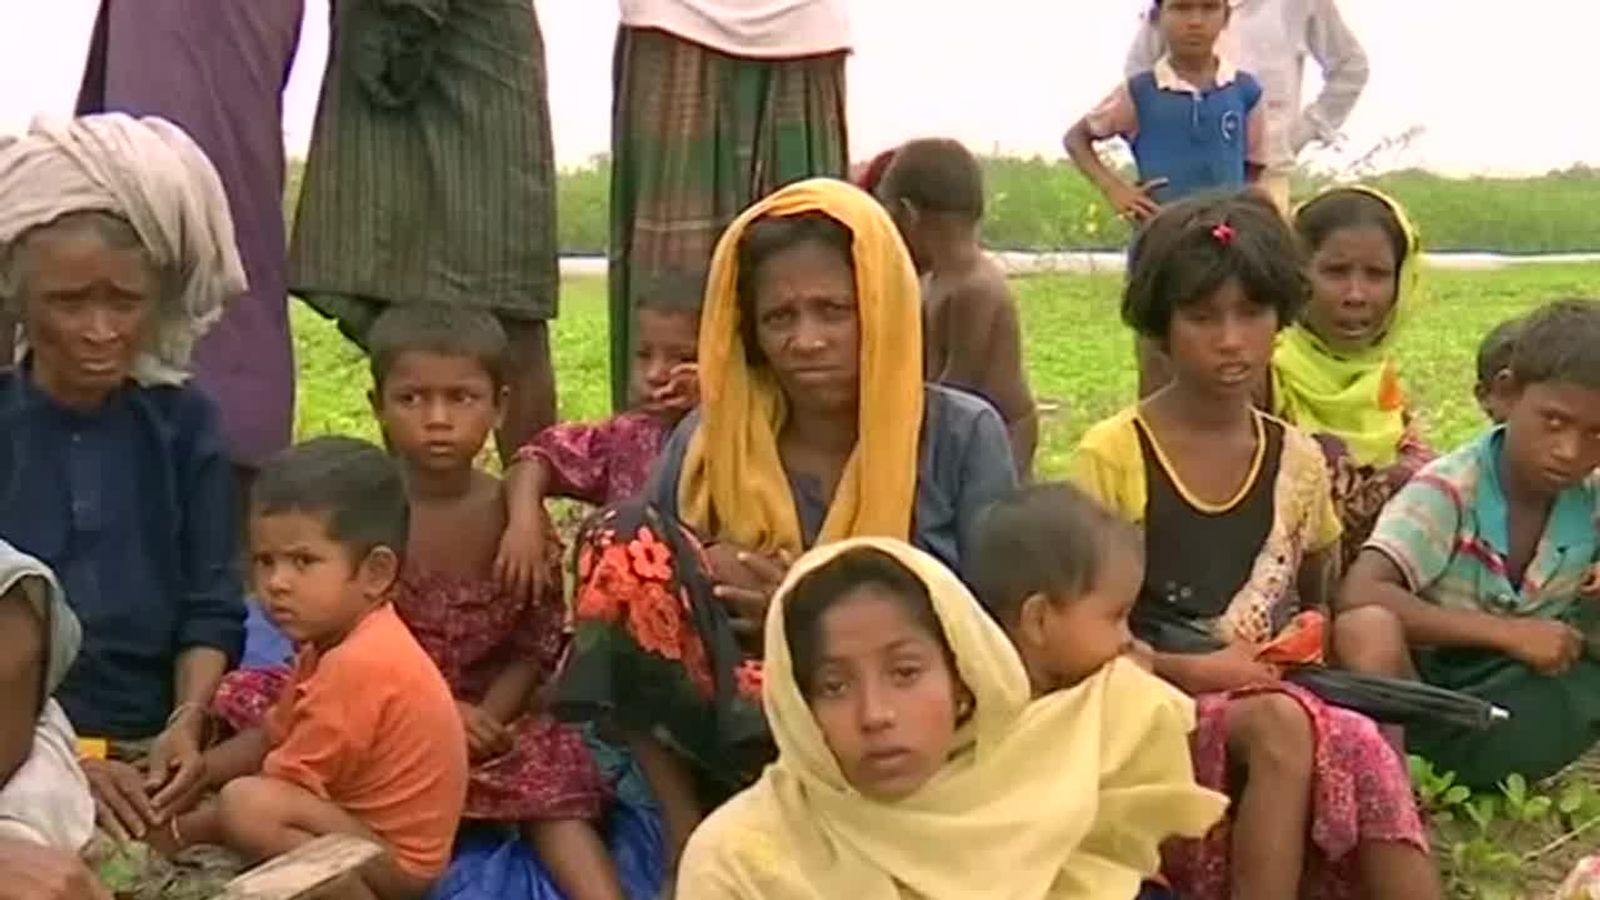 Who are the Rohingya Muslims and what's going on in Burma?